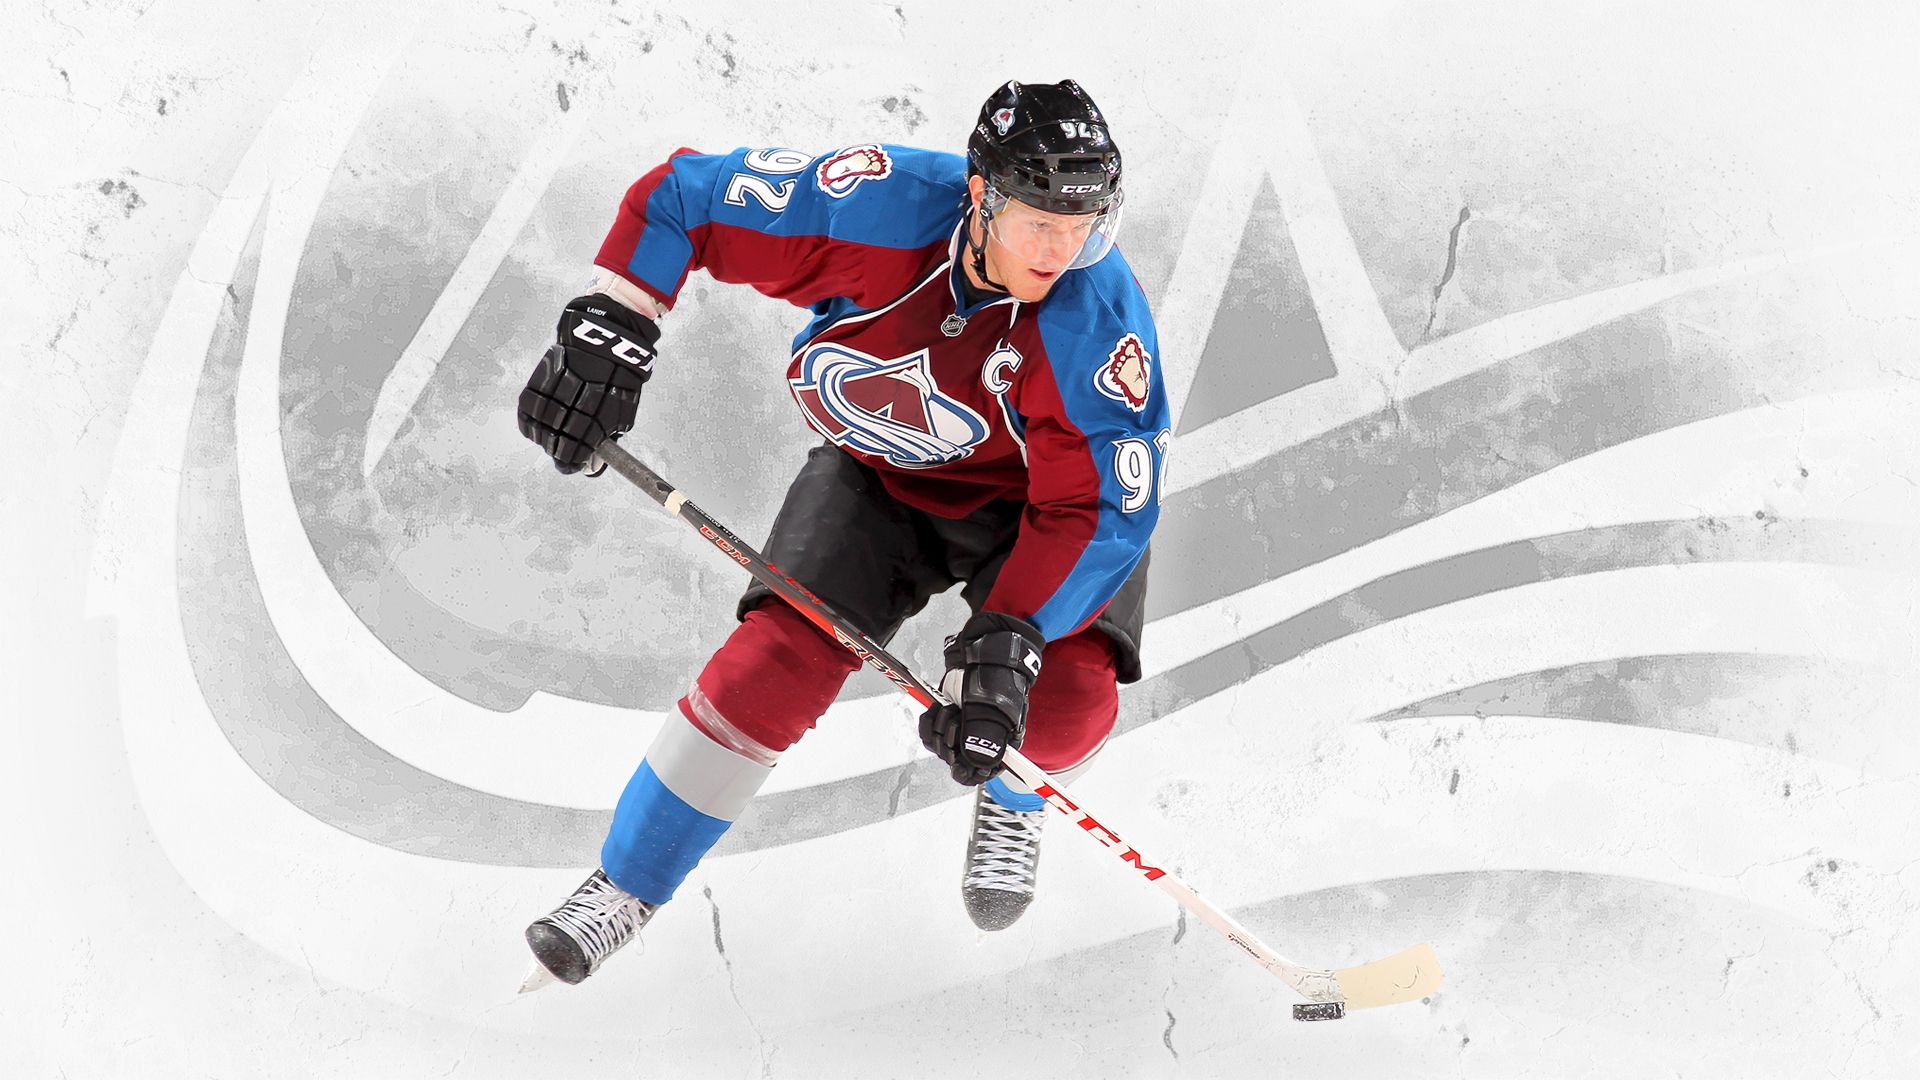 1920x1080 - Colorado Avalanche Wallpapers 19